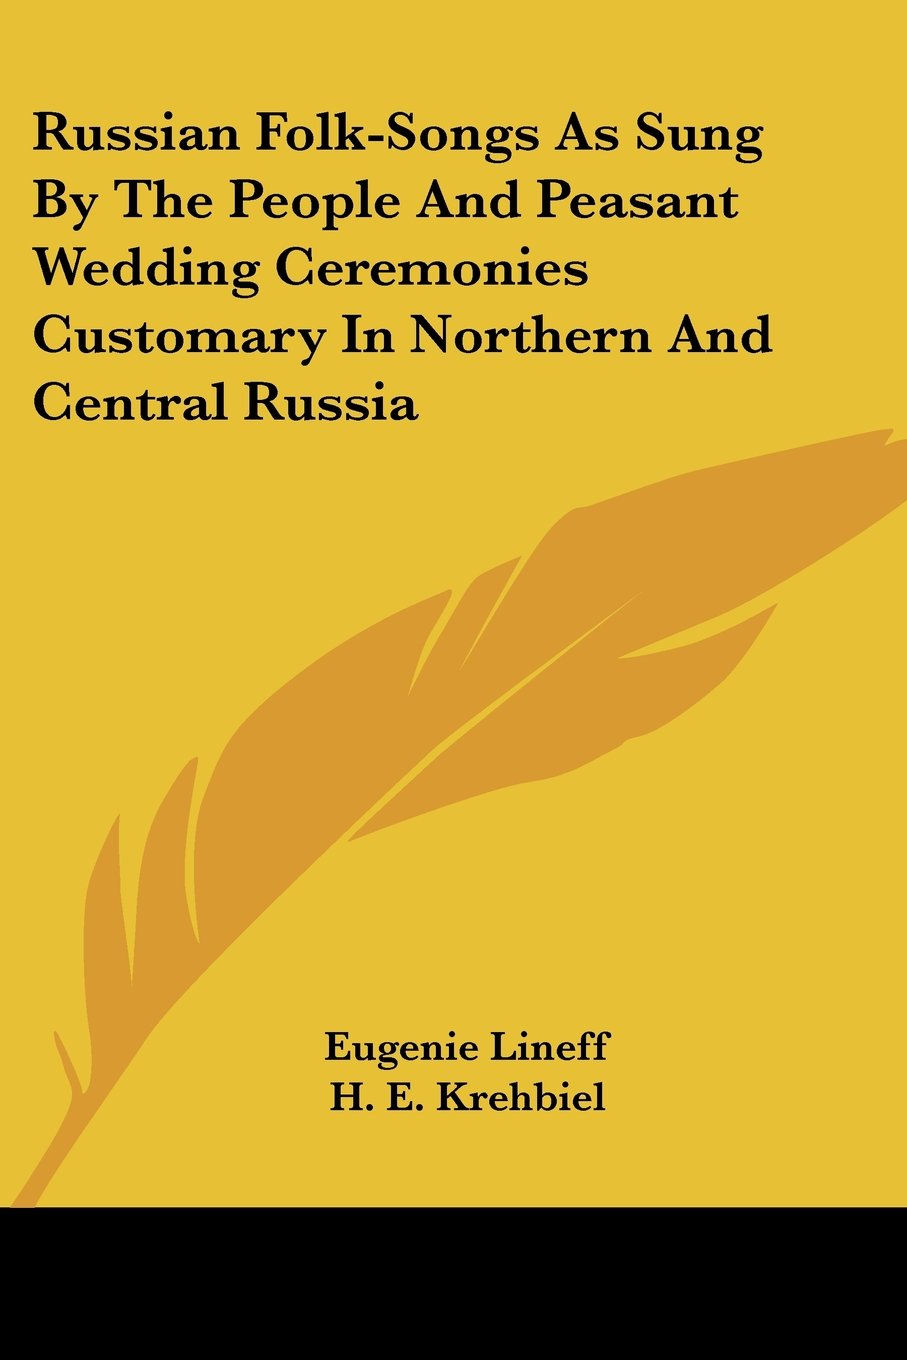 Russian Folk-Songs As Sung By The People And Peasant Wedding Ceremonies Customary In Northern And Central Russia ebook